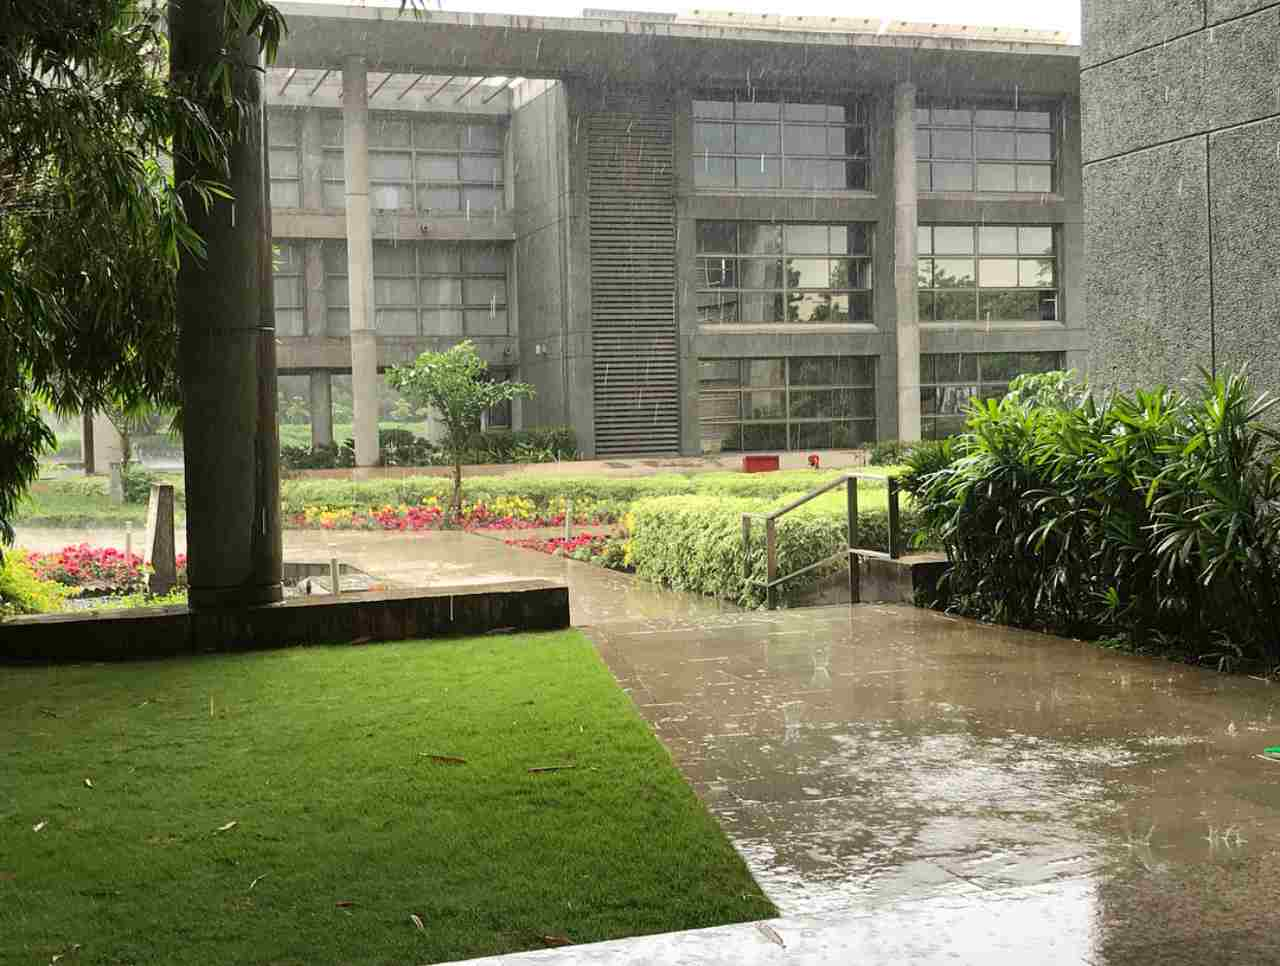 A rainy day at the IITM office. Image: IITM